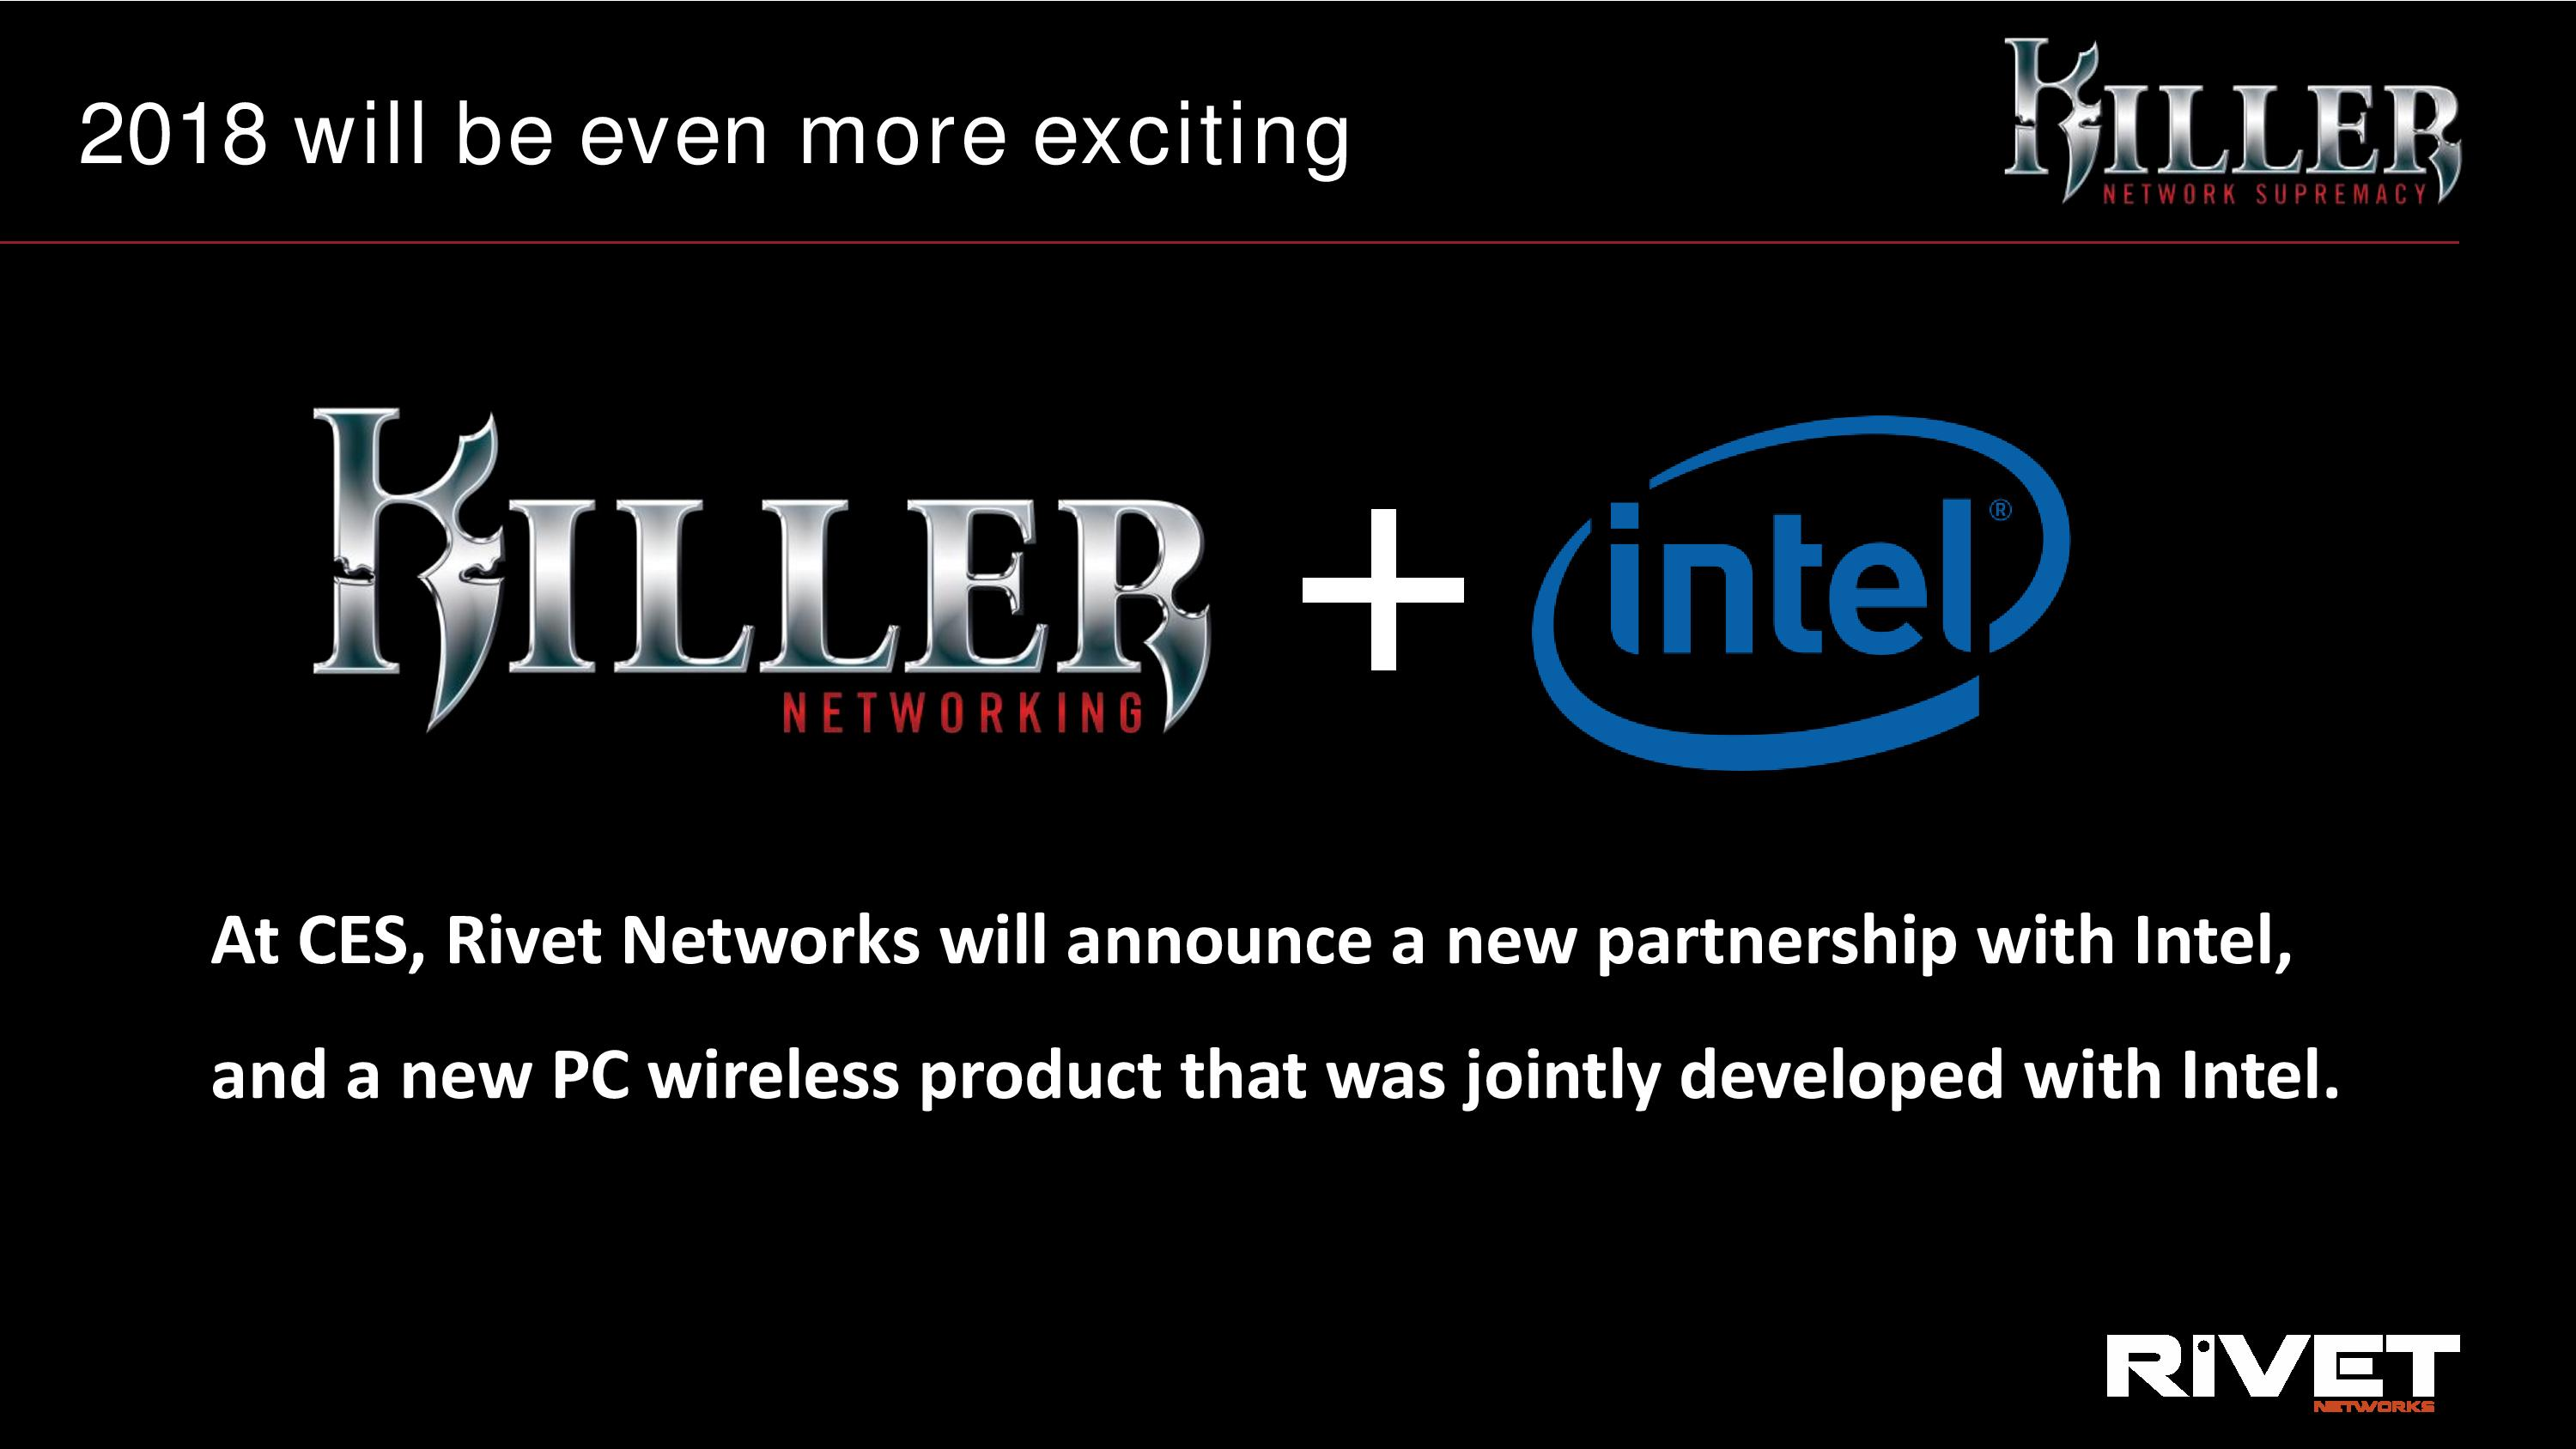 It's Actually an Intel Chip: Rivet Networks Launches the Killer